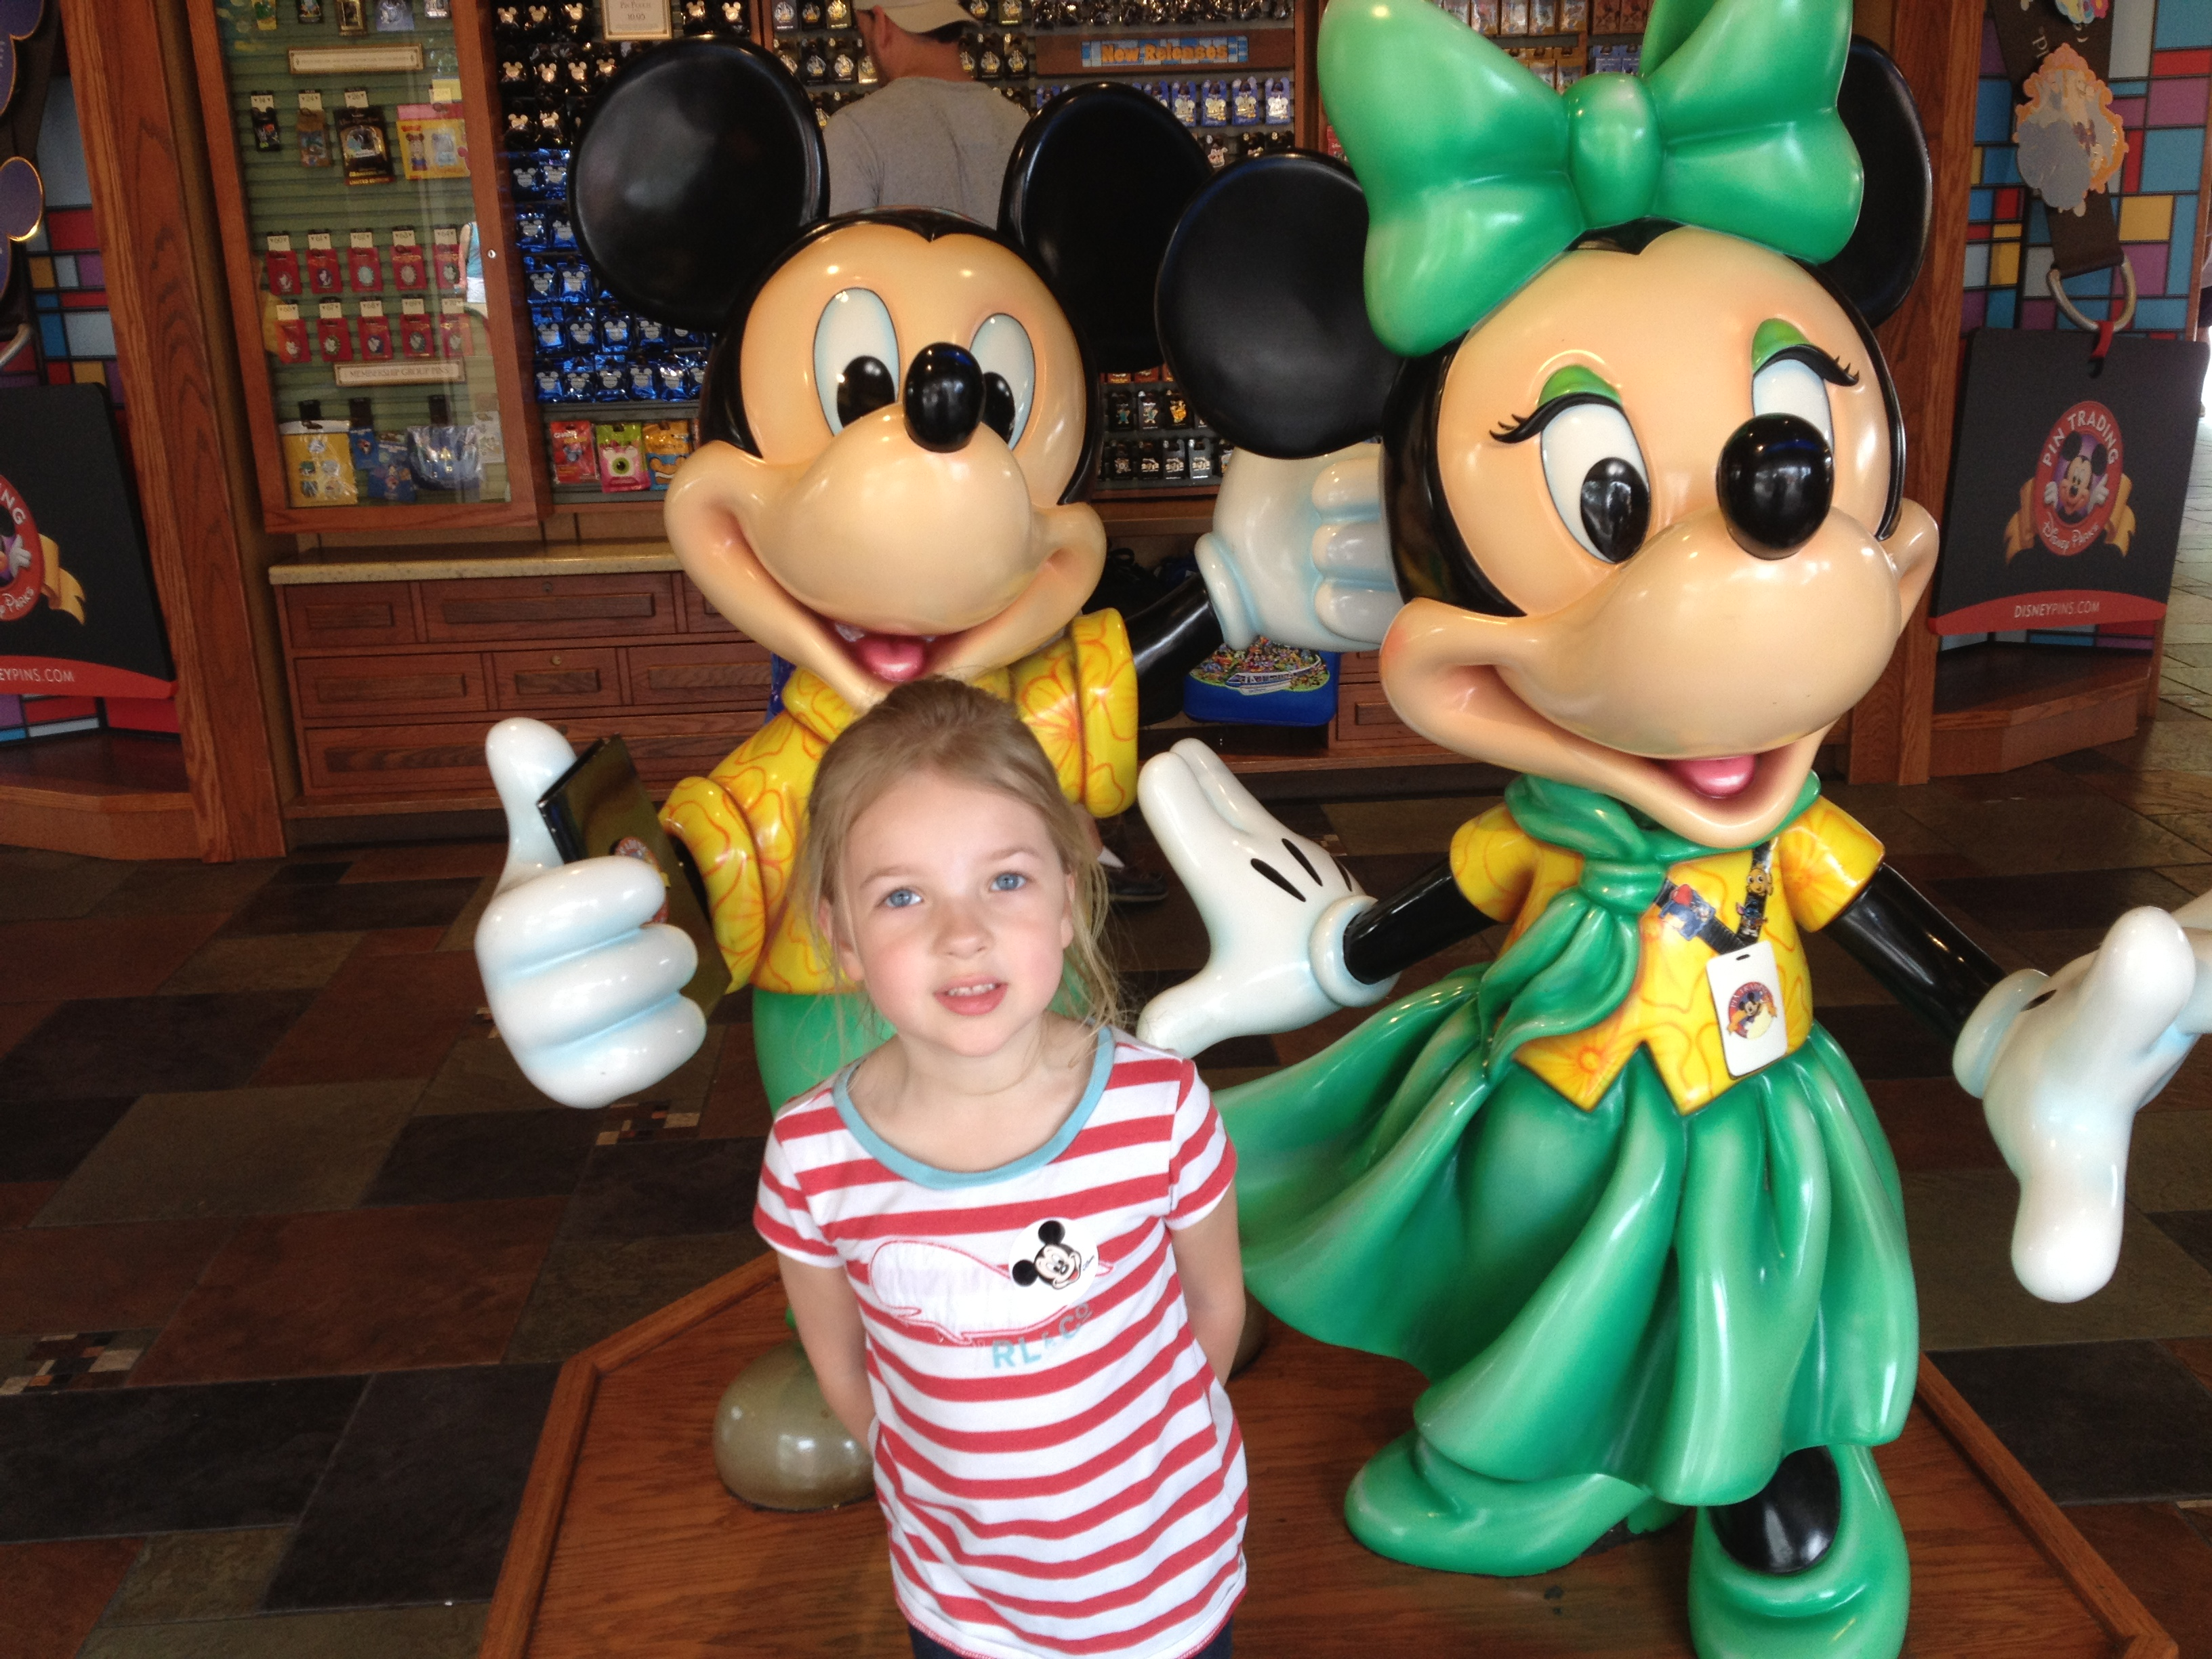 We have a Magical Day Despite Not Going to the Magic Kingdom